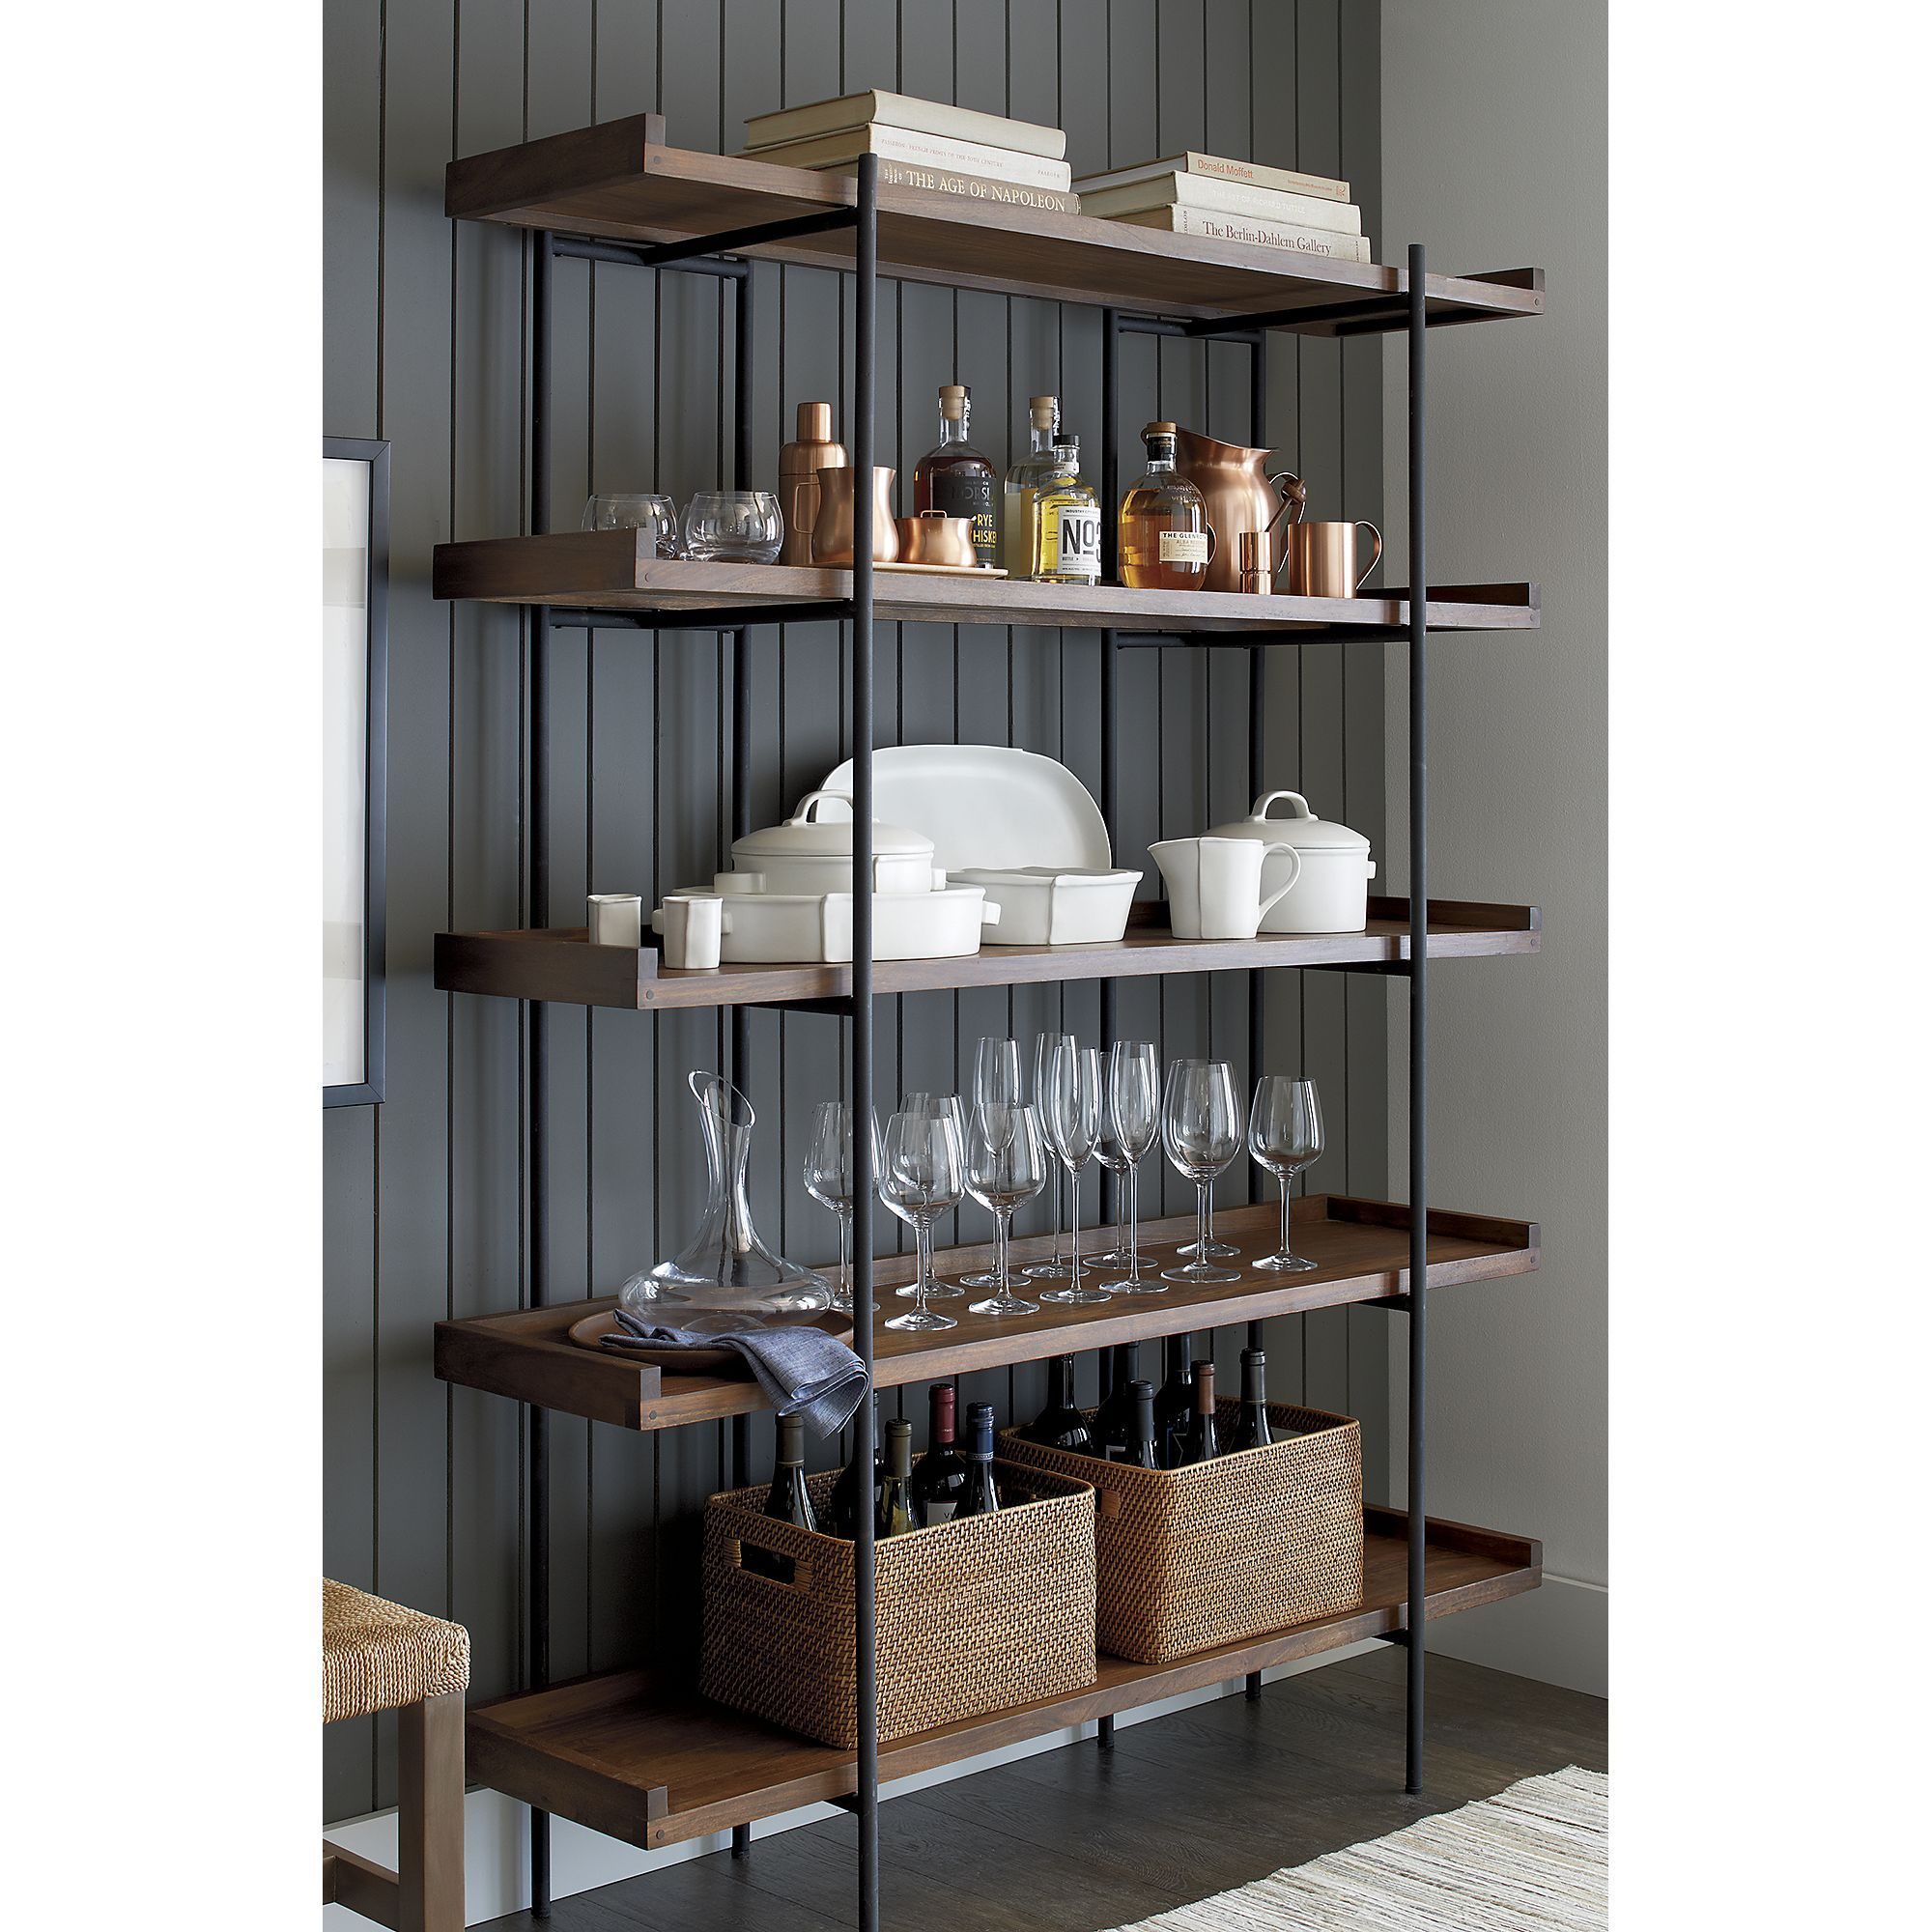 Dining Room Wall Shelves Beckett 5 High Shelf In Bookcases Crate And Barrel